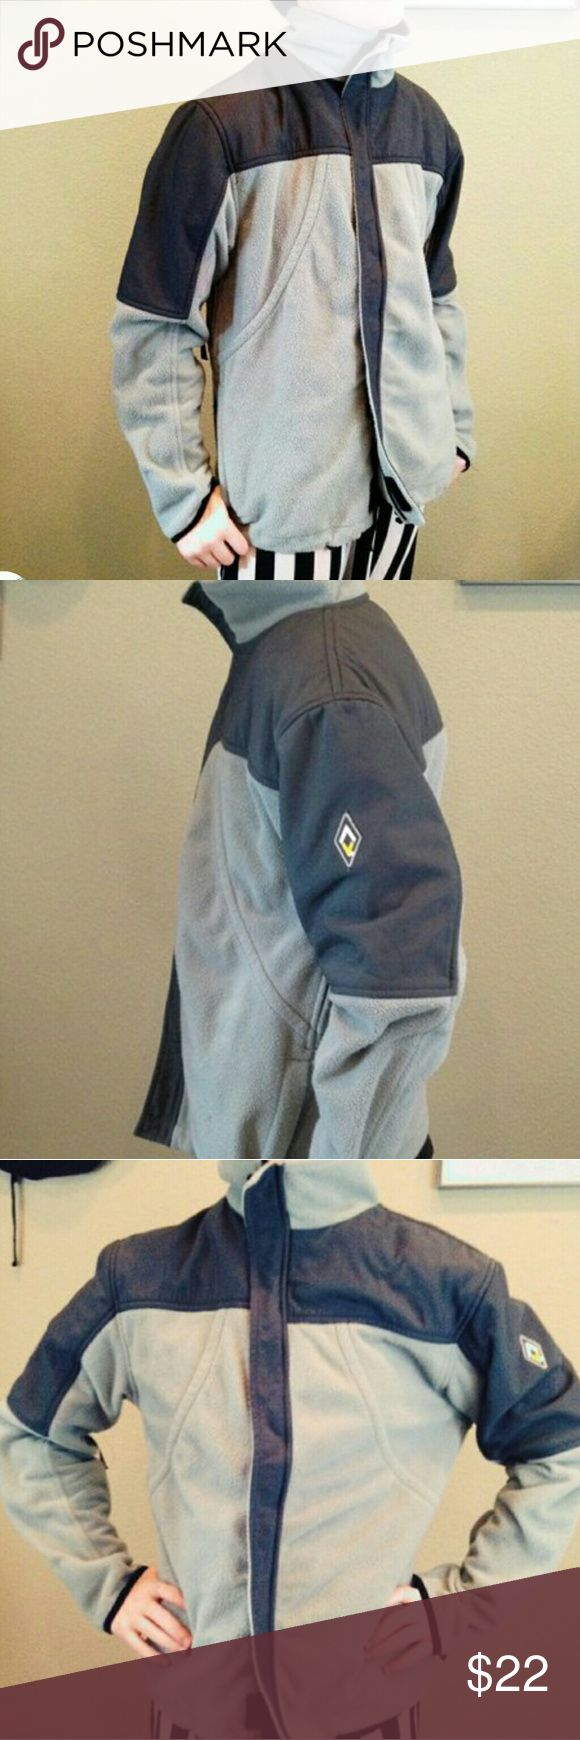 Burton fleece ski jacket It's still cold as heck This Burton ski coat is prime! Fleece and waterproof outer with zipper front and pockets Fits a size Small or Medium Excellent condition   Pair with any cold weather looks to stay warm & cozy Perfect for an outdoor girl Burton Jackets & Coats